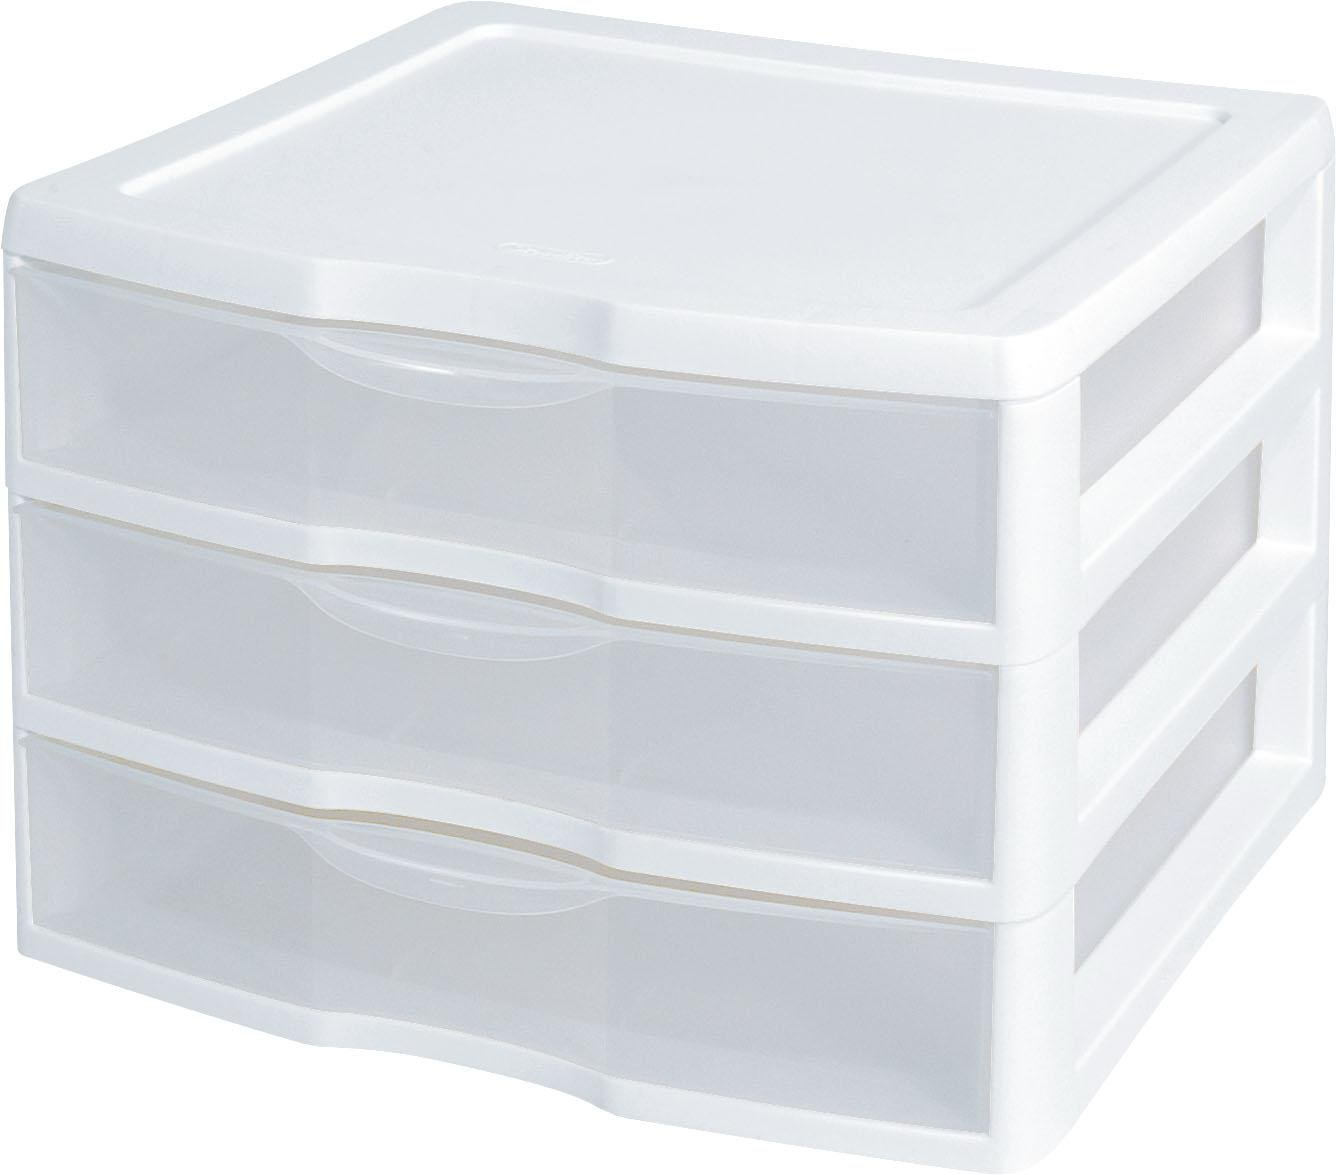 "Sterilite 3-Drawer Organizer - ClearView Wide 2093 (White / Clear) (10.25""H x 14.5""W x 14.25""D) PACK OF 2"